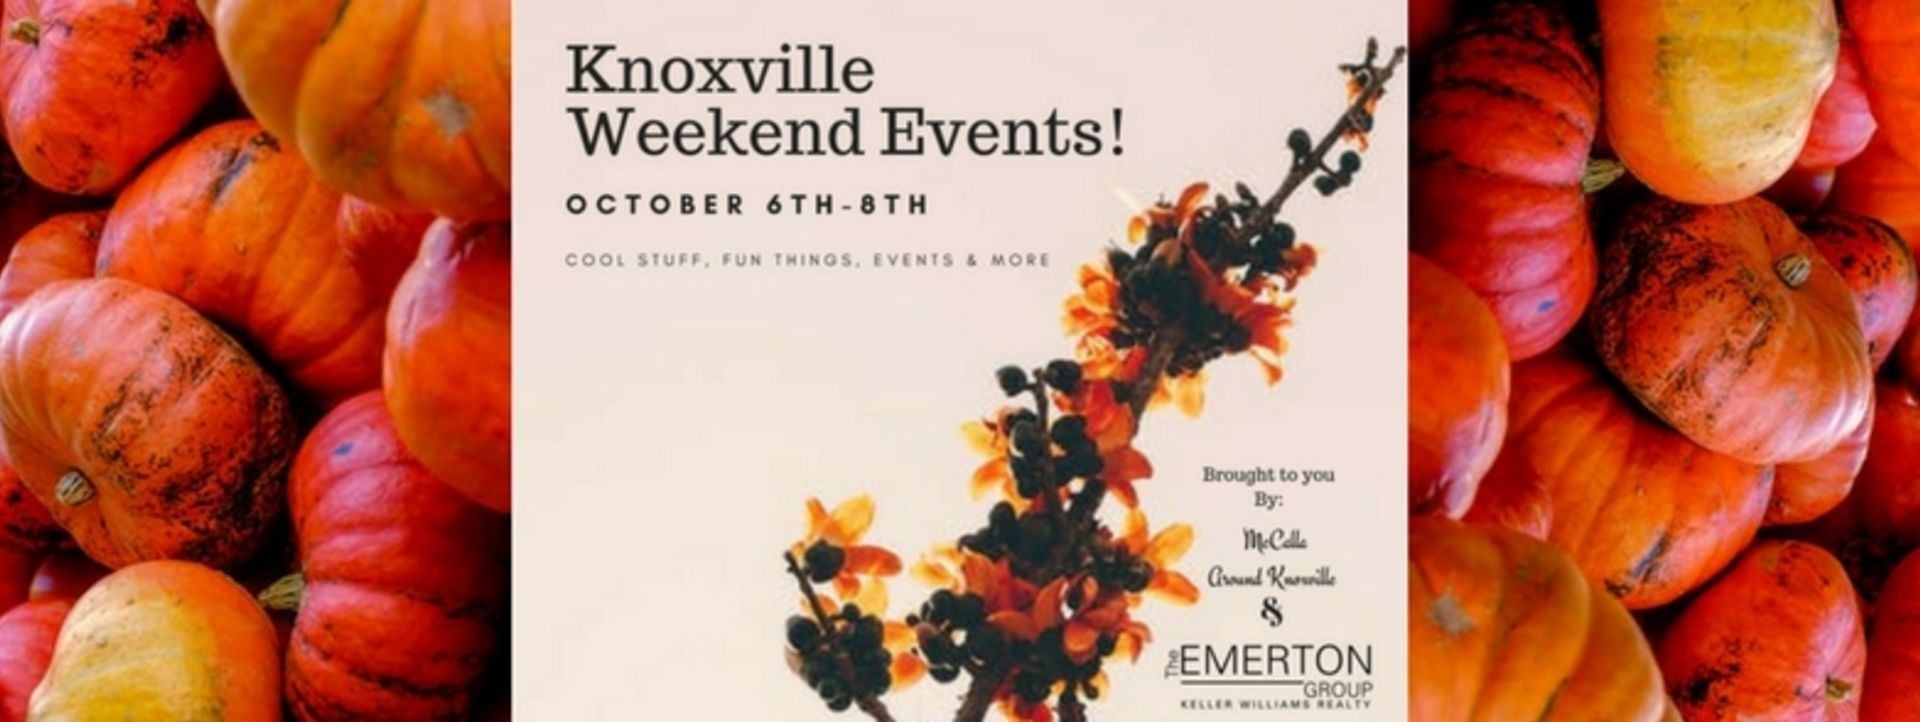 Weekend Events October 6th-8th